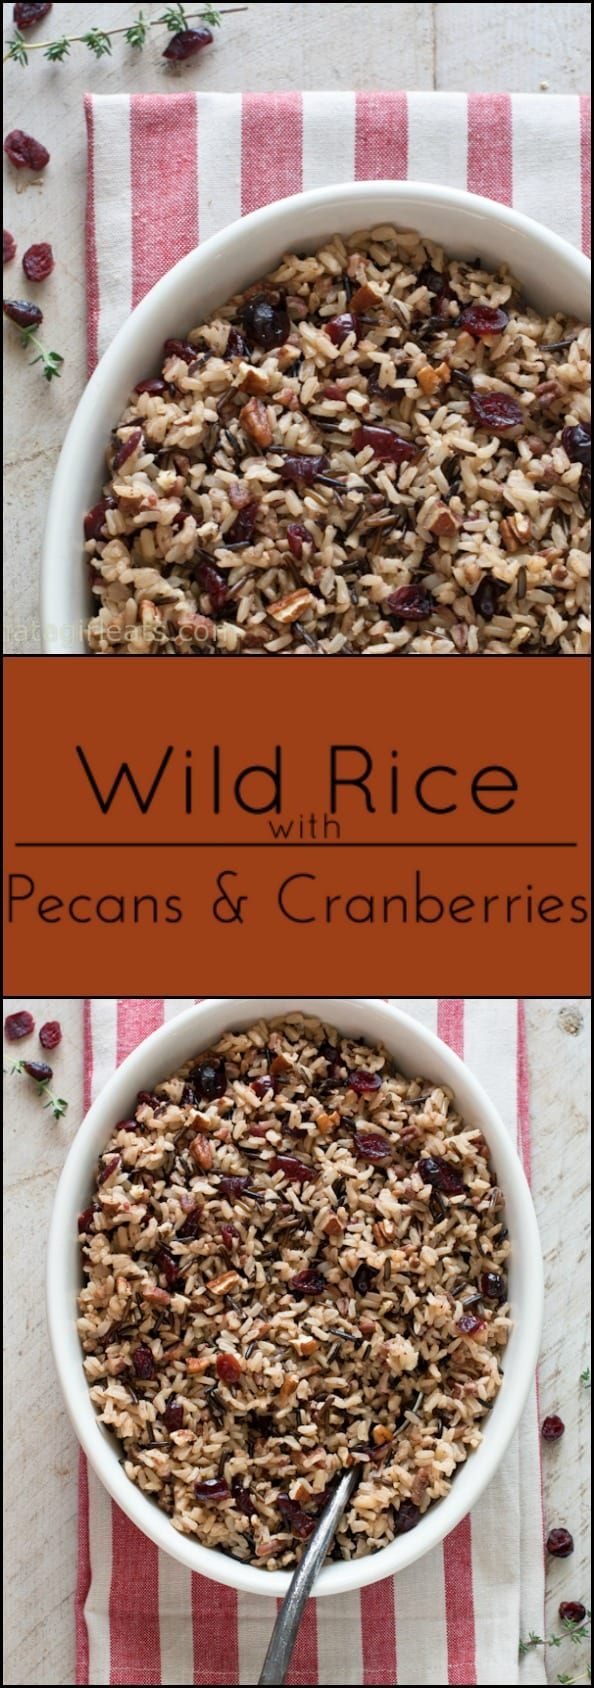 Wild rice with pecans and cranberries is a nice gluten free alternative to stuffing. It goes well with any poultry dish.